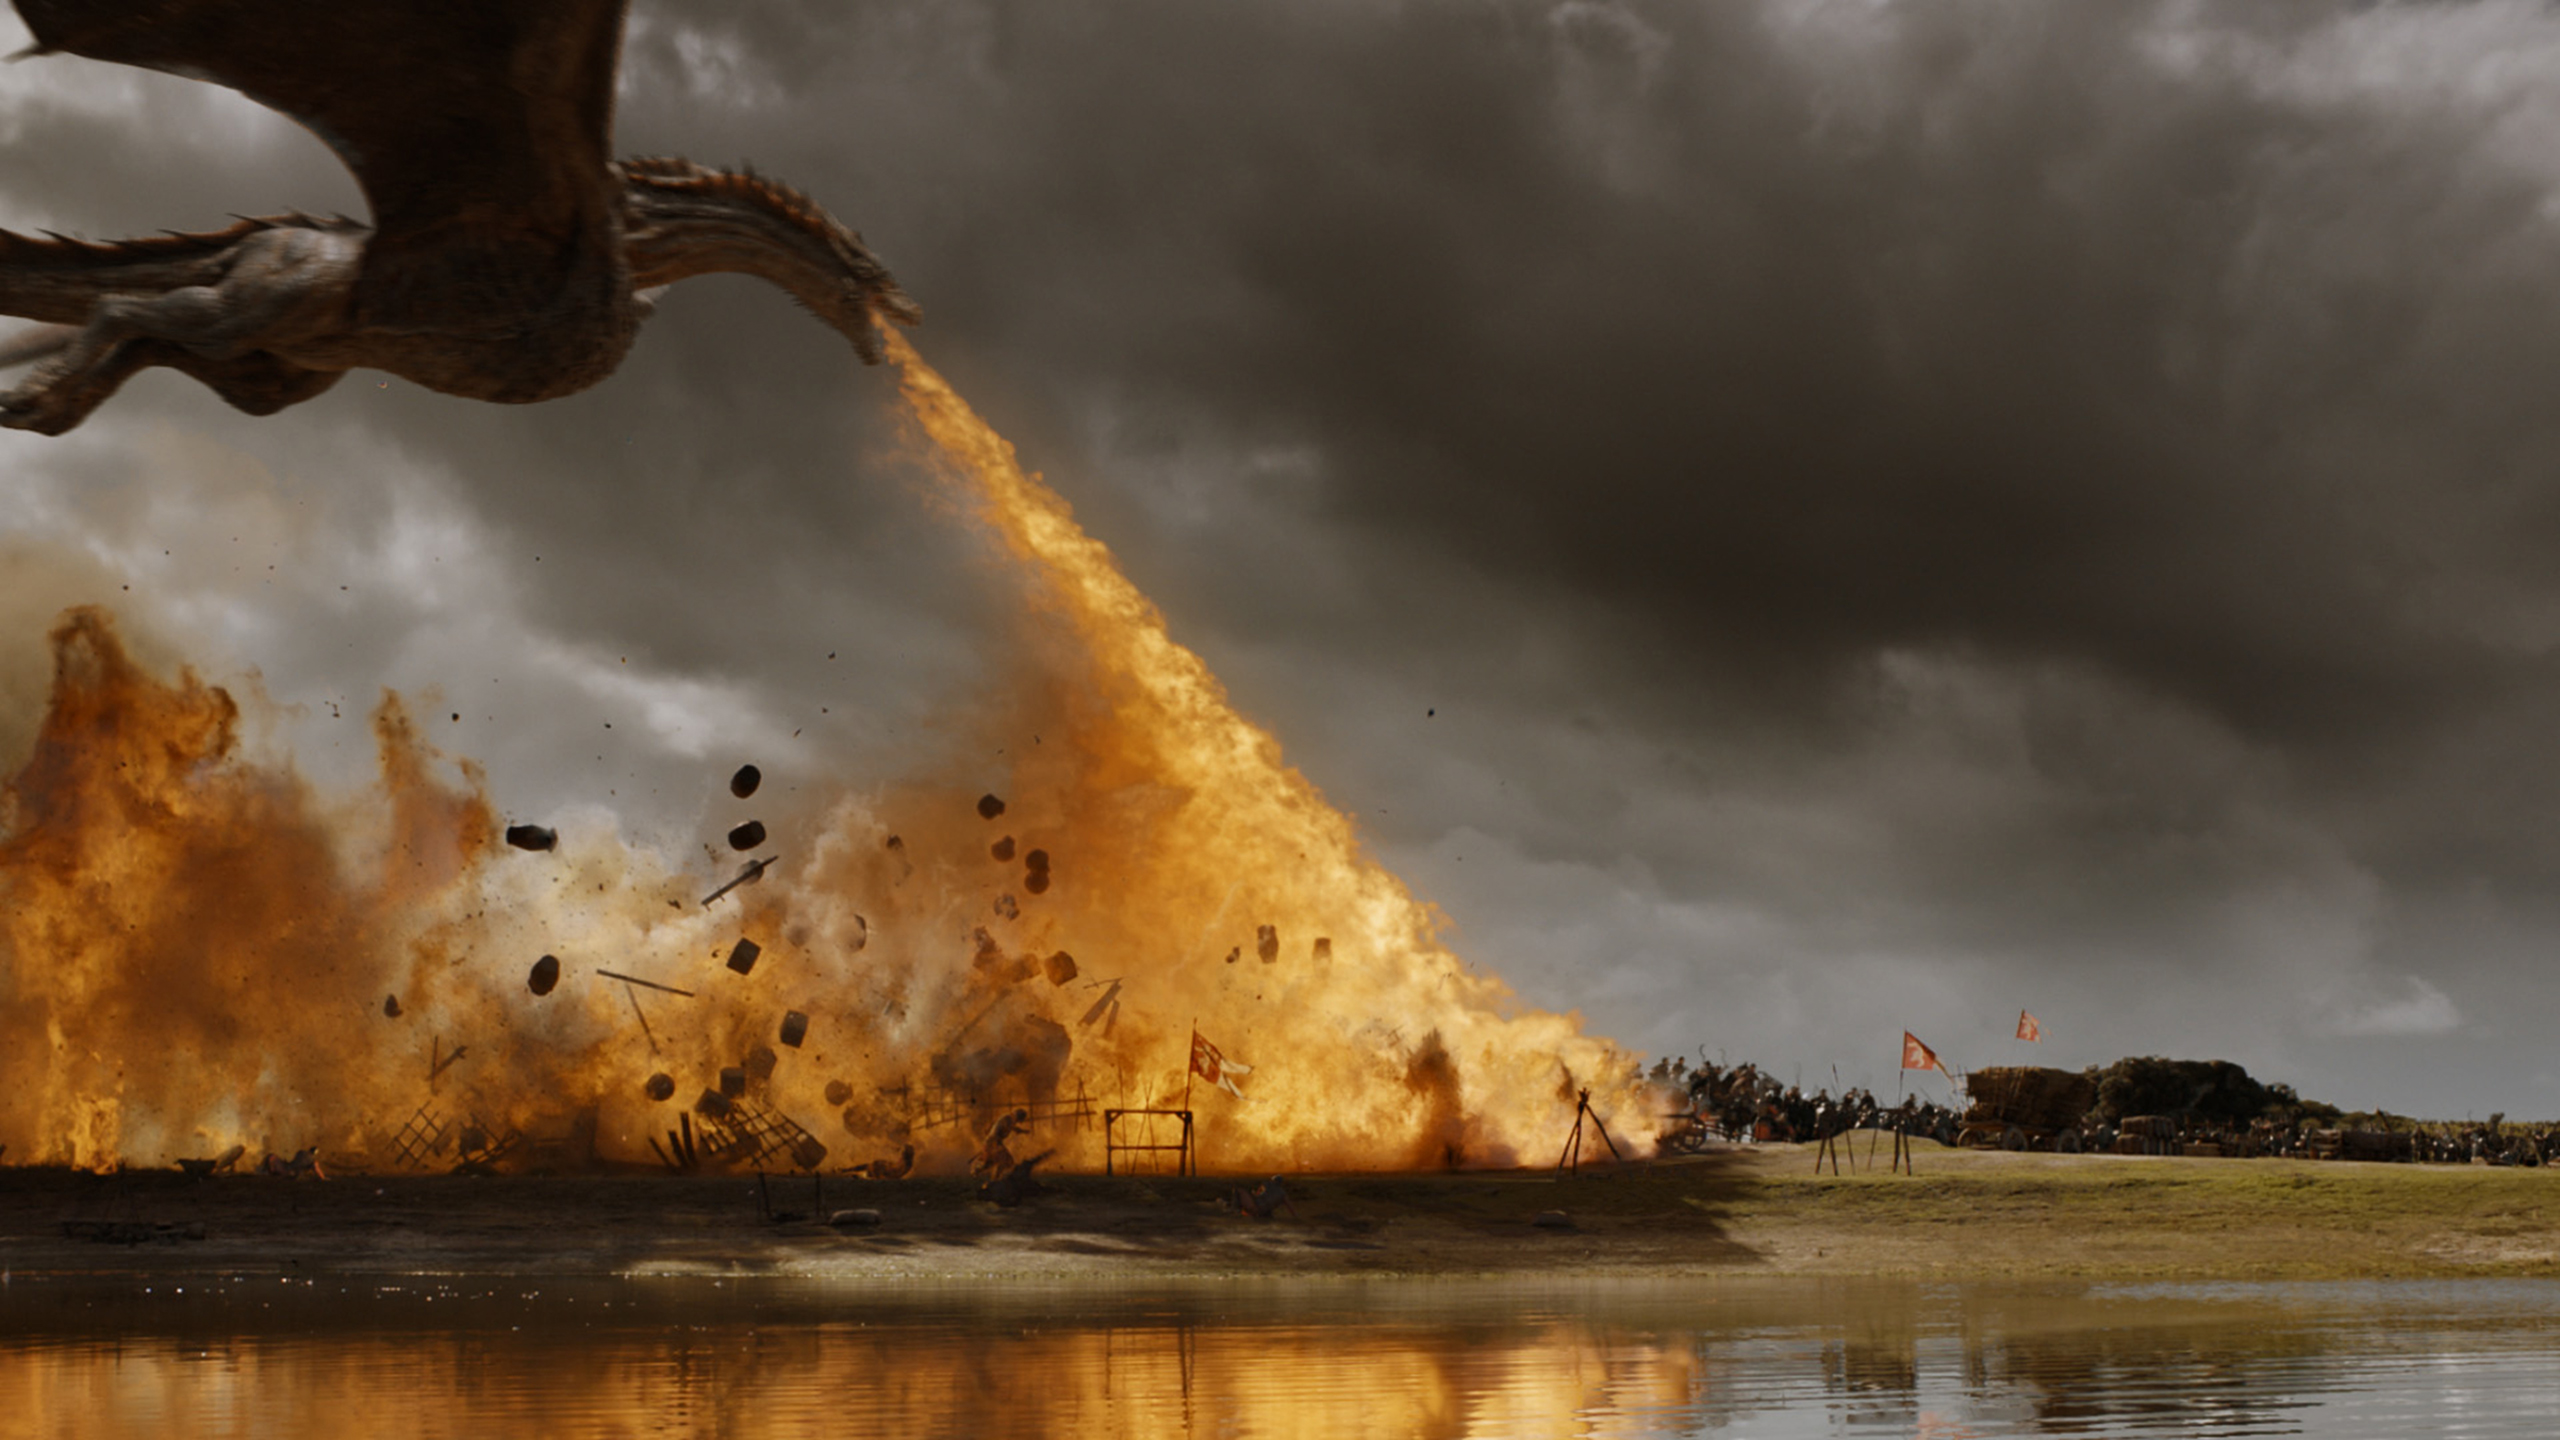 Game Of Thrones Funny Dragon Gif Memes From Spoils Of War Time